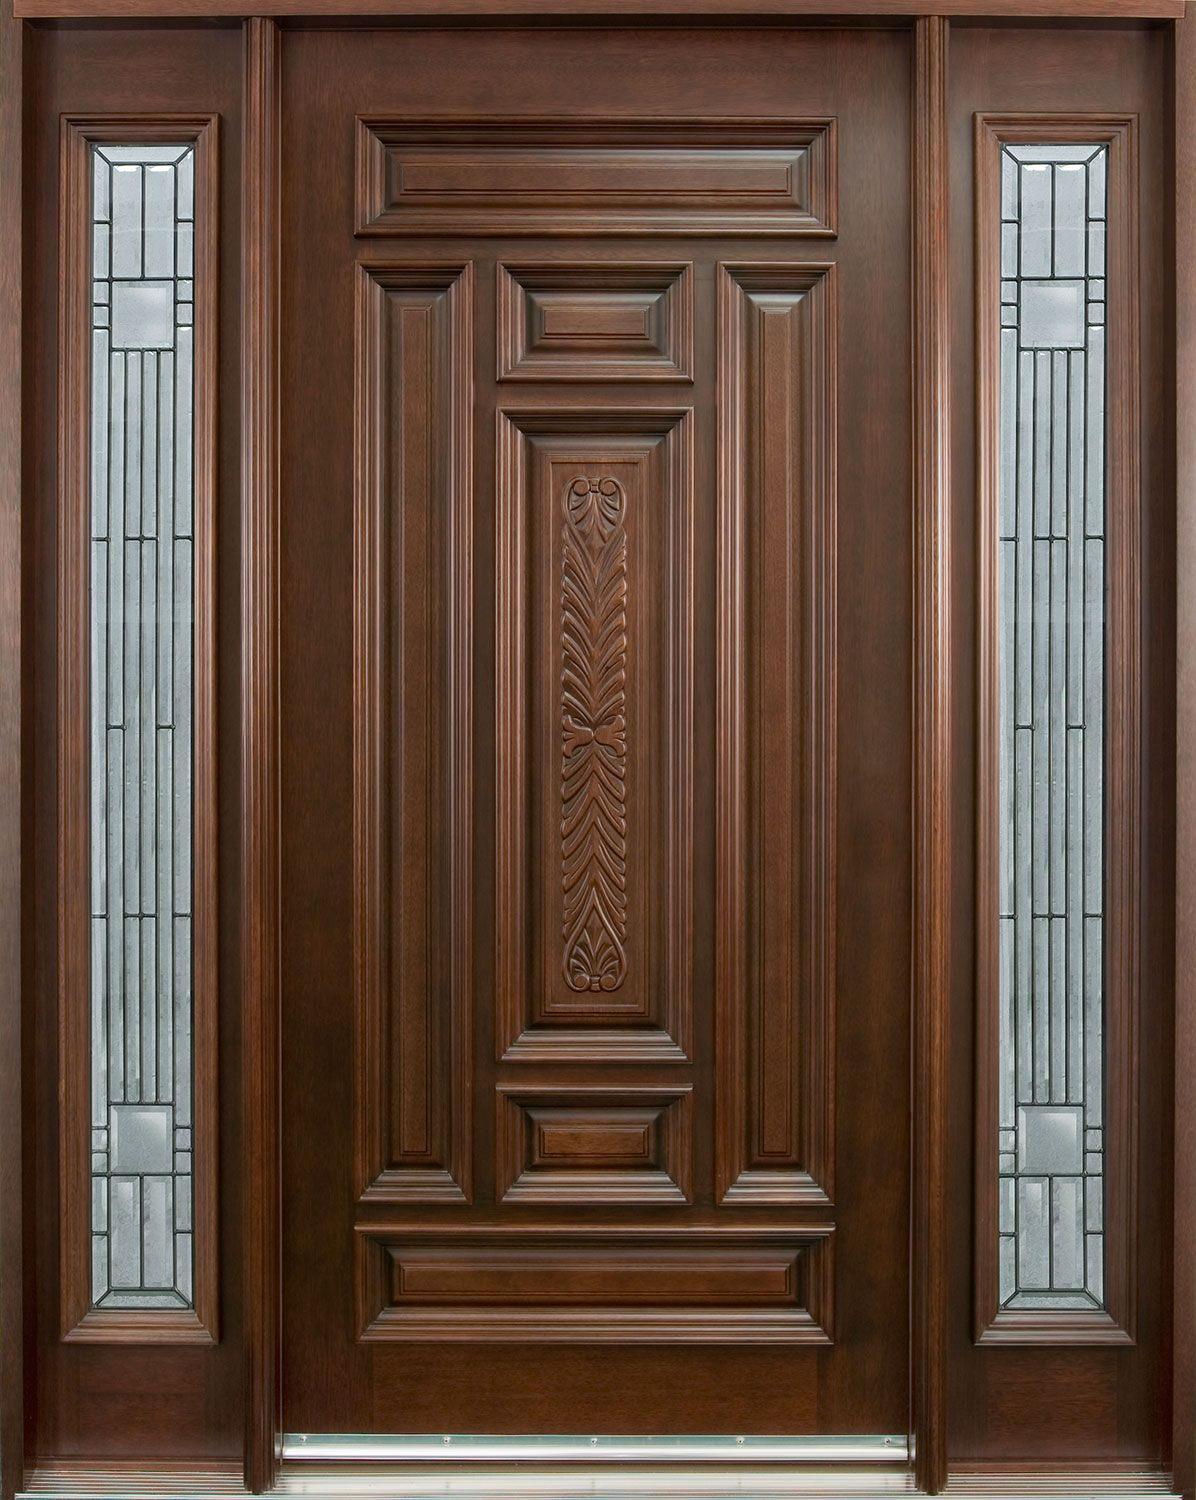 Classic Door Design double hinged doors Architecture Classic Main Door Design Using Stained Glass Window